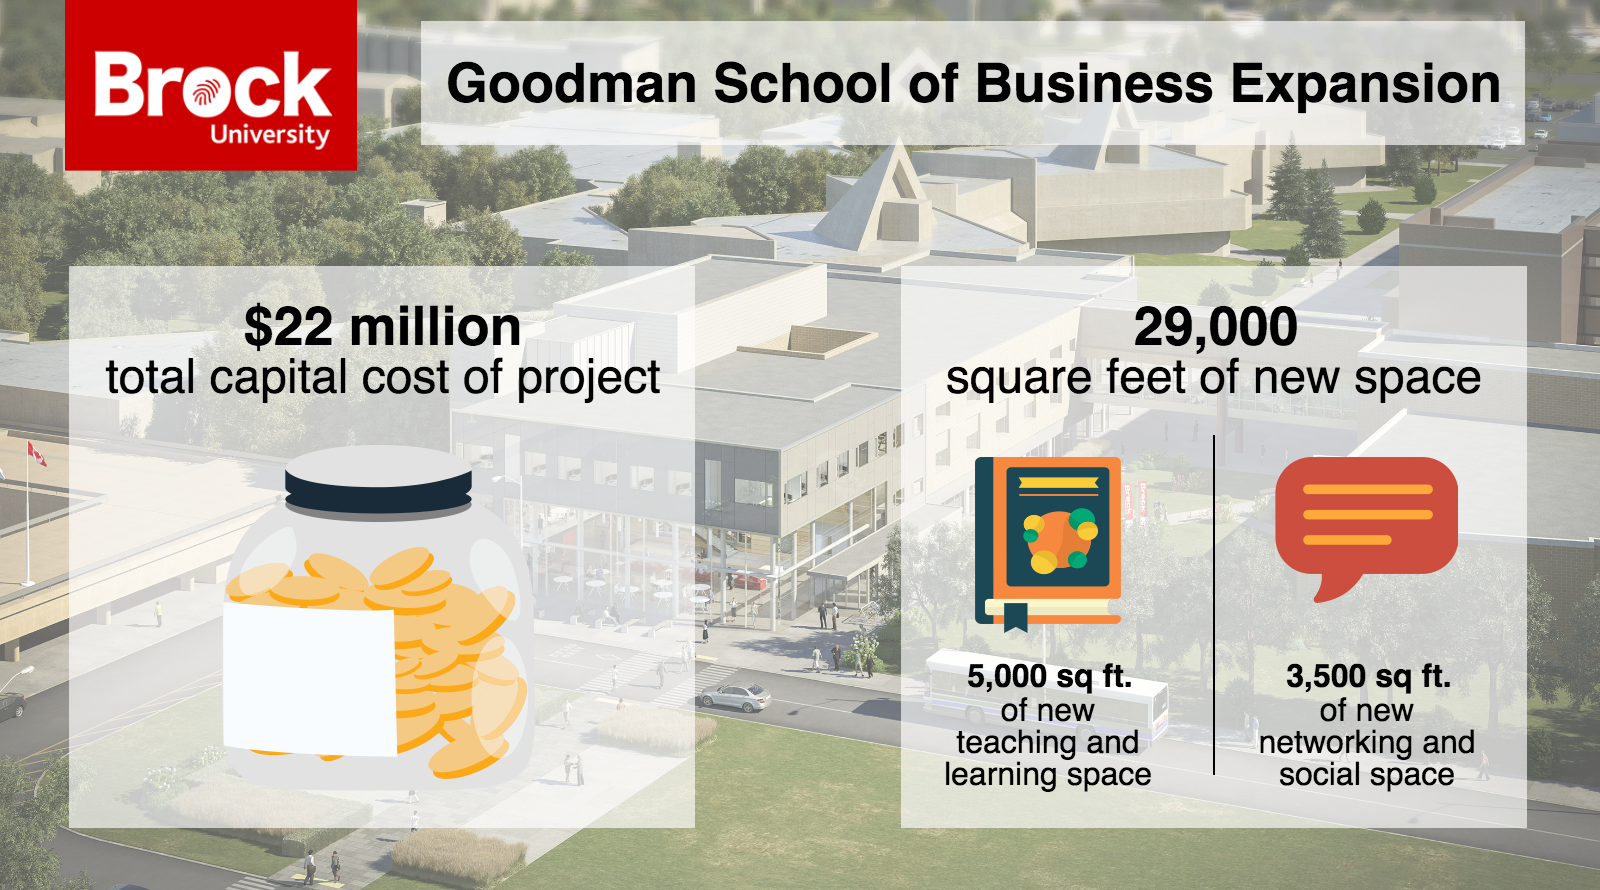 info graphic showing cost of goodman school expansion